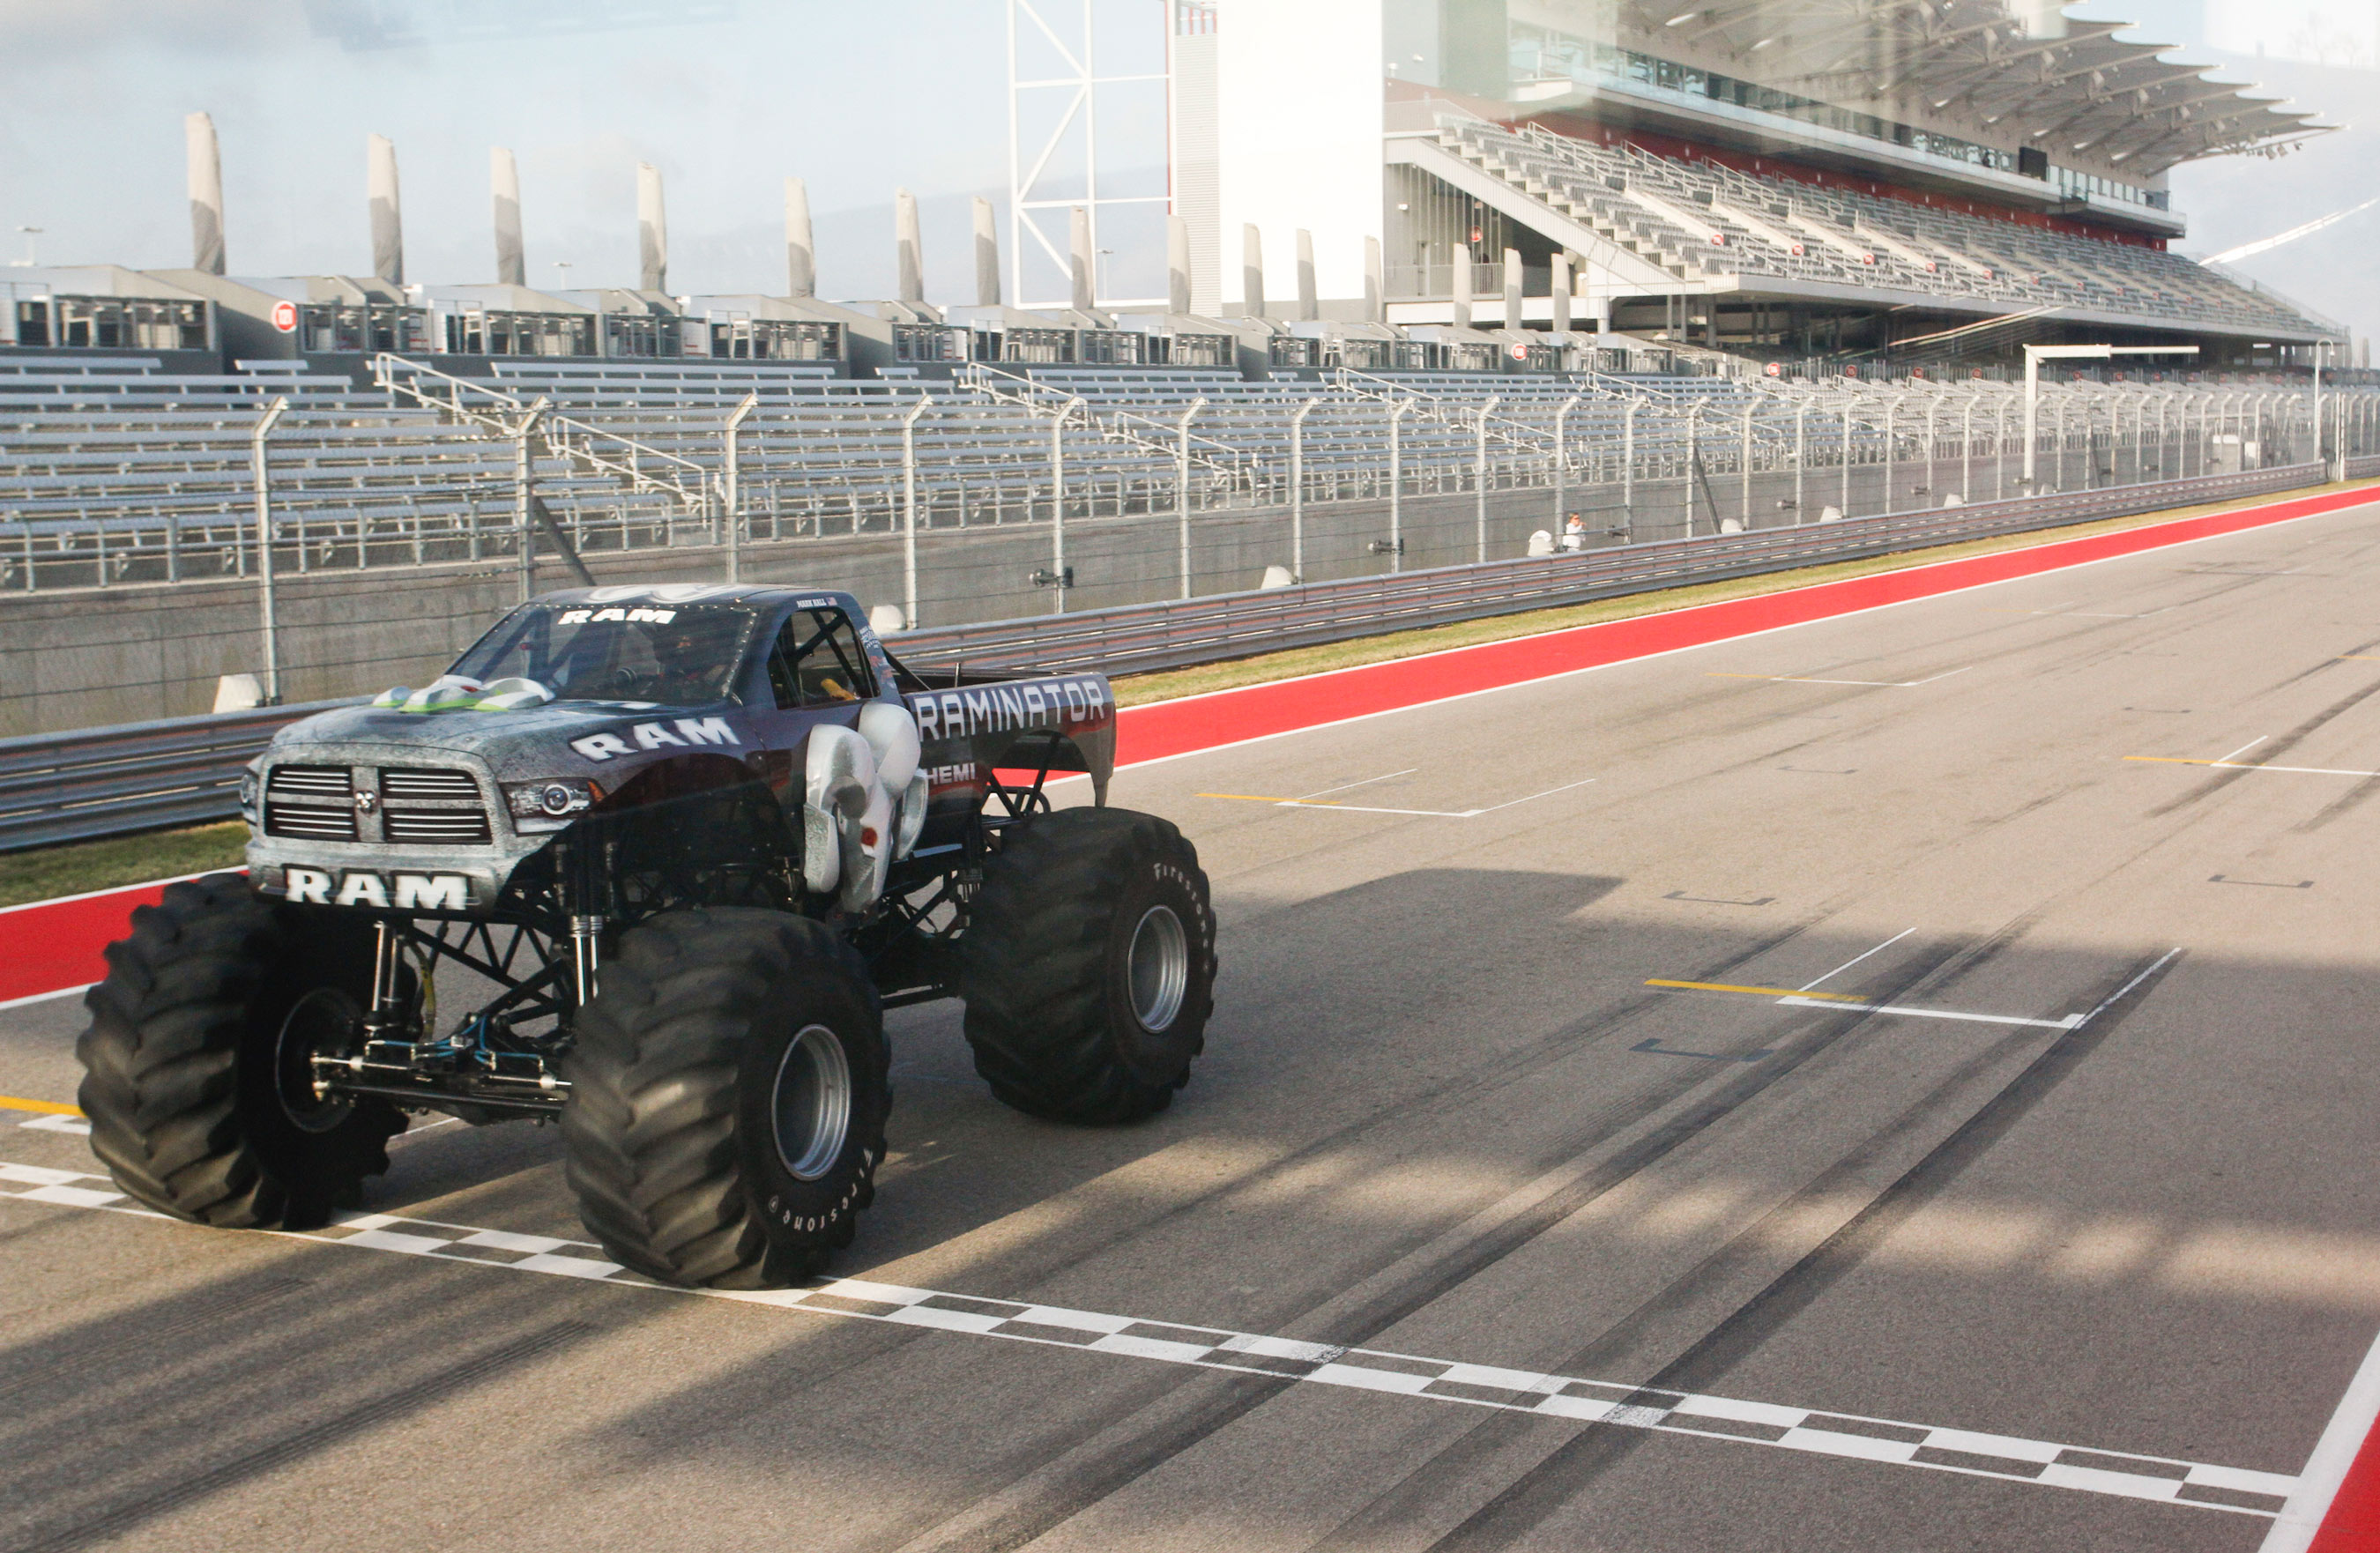 The 2000 HP 9 2 Liter Hemi Raminator Is ficially The World s